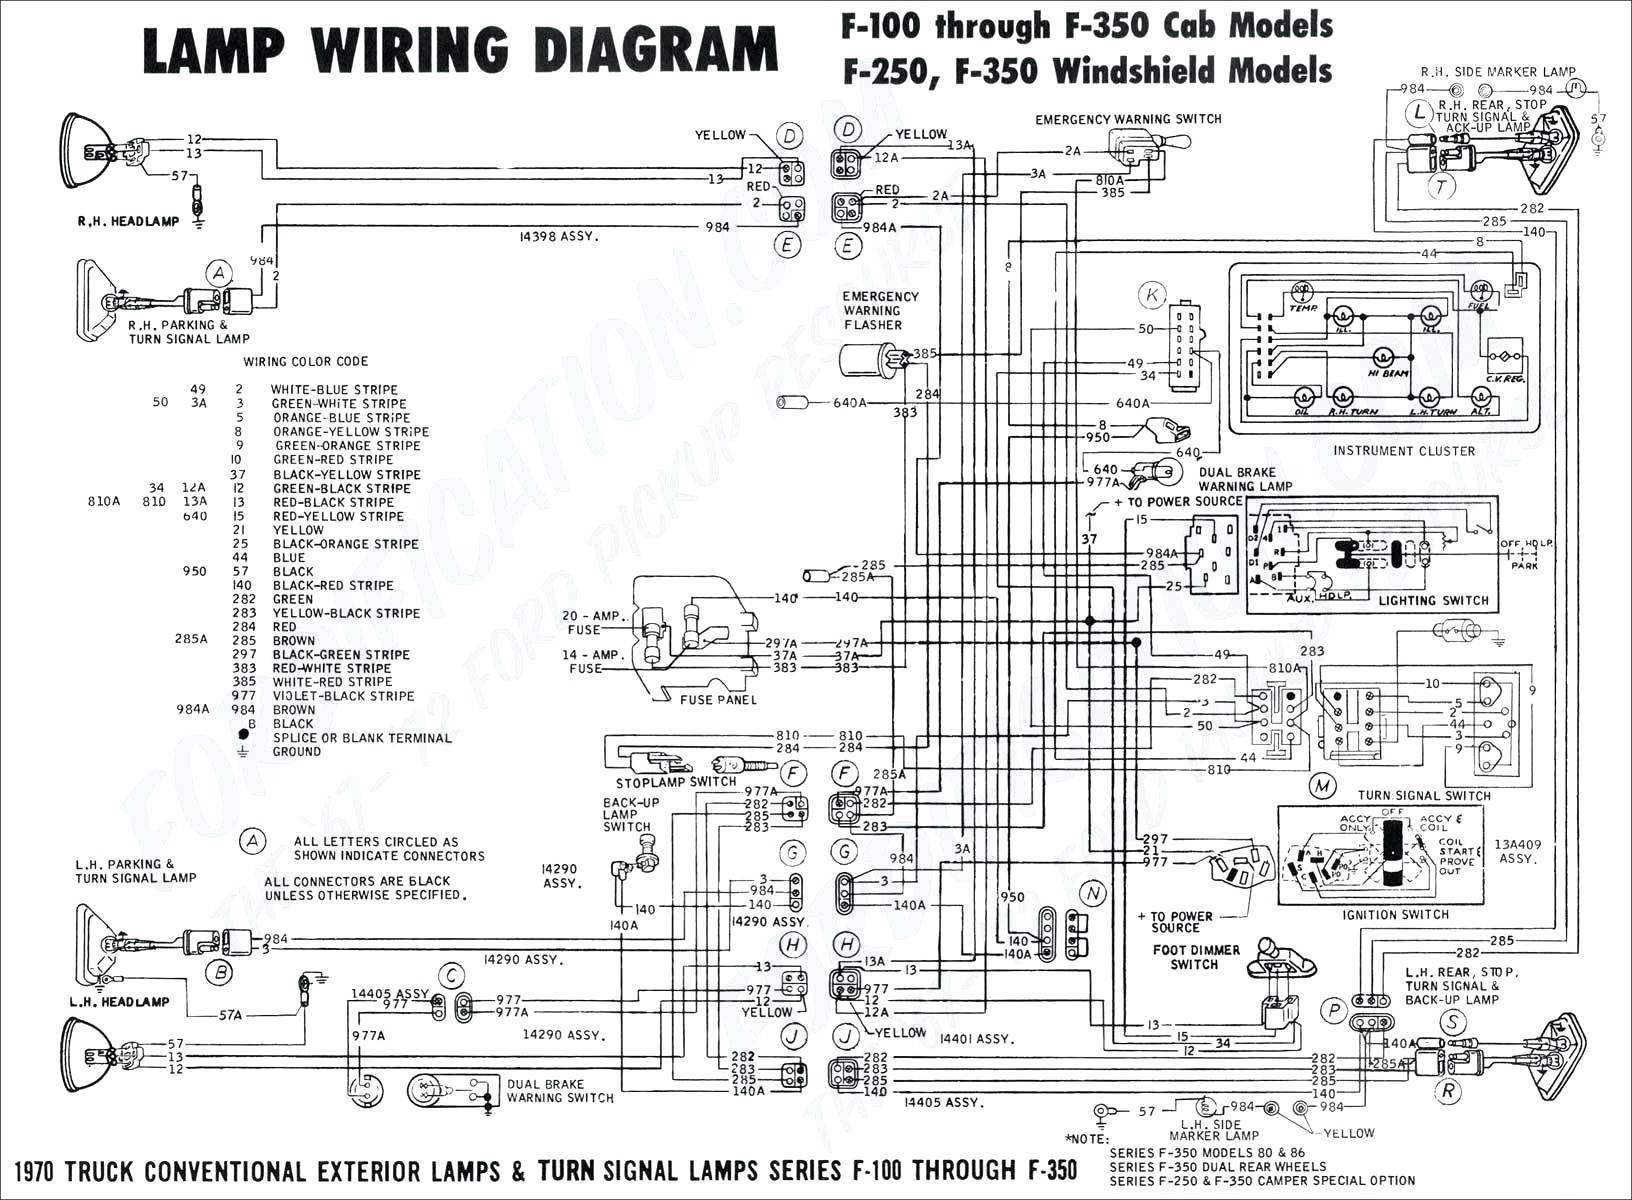 1997 ford F150 Wiring Diagram 08 ford F 150 Abs Wiring Diagram Data Wiring Diagrams • Of 1997 ford F150 Wiring Diagram